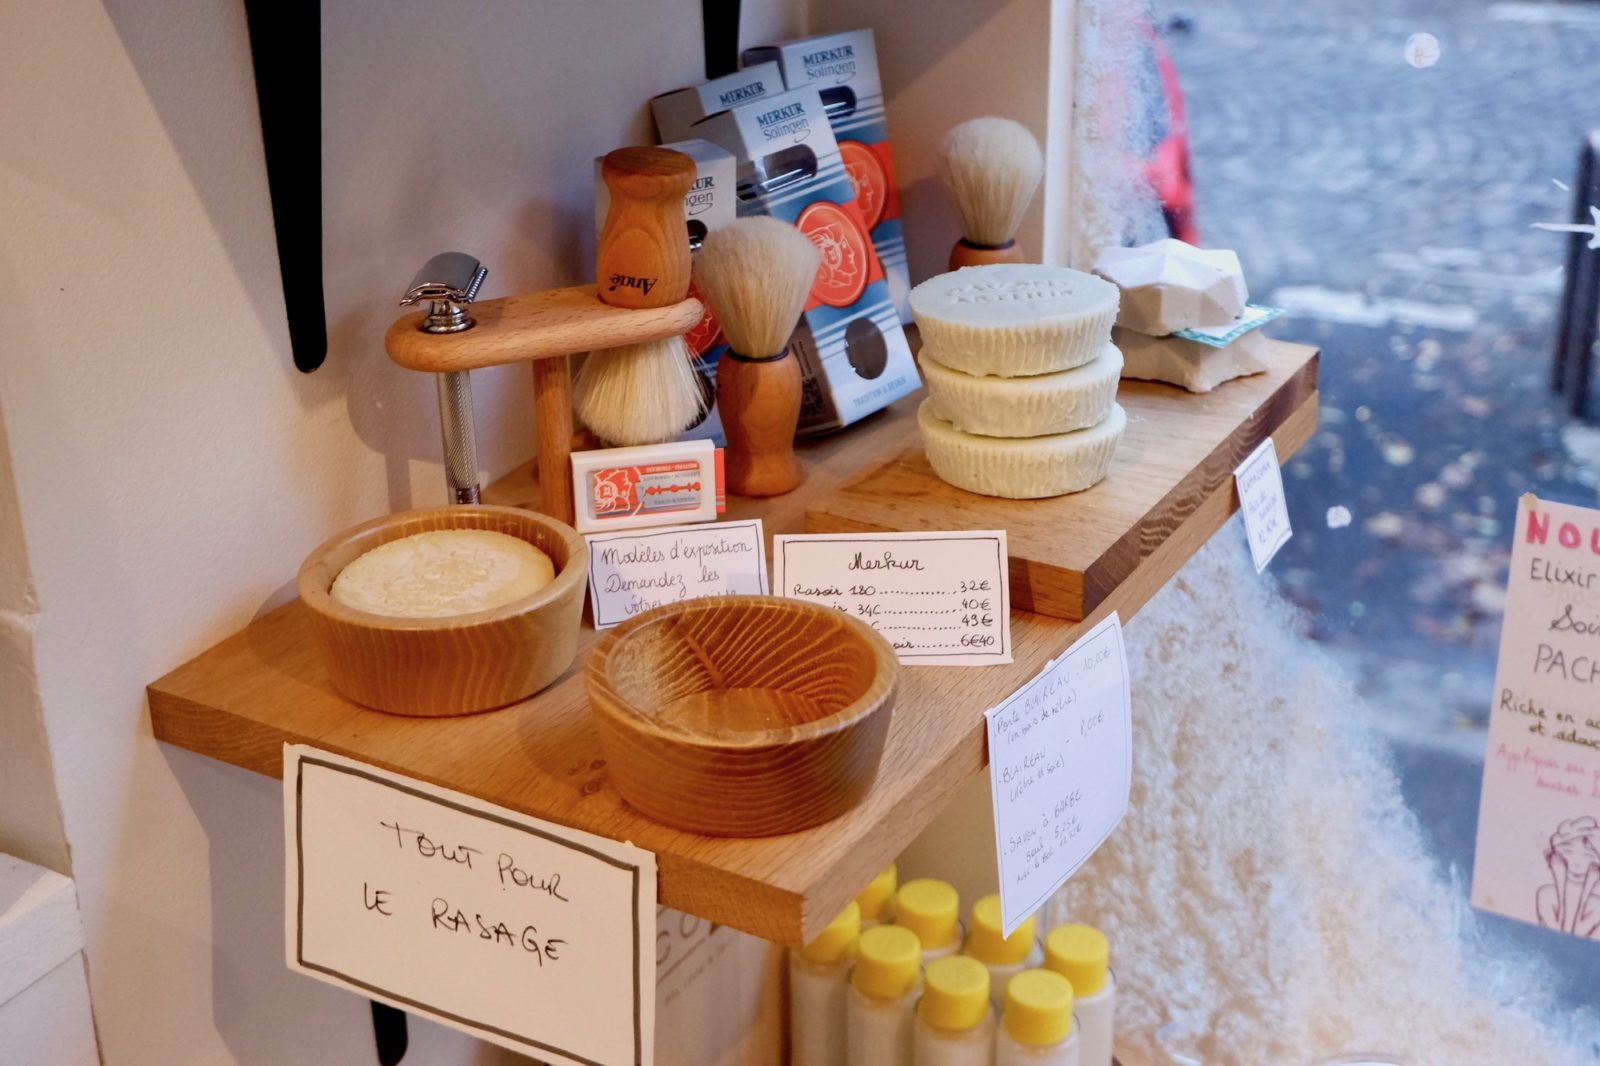 As well as bento boxes, solid shampoo and handmade soaps, the Maison du Zéro Déchet (house of zero waste) also sells wooden shaving kits and other gifts to bring home from Paris.